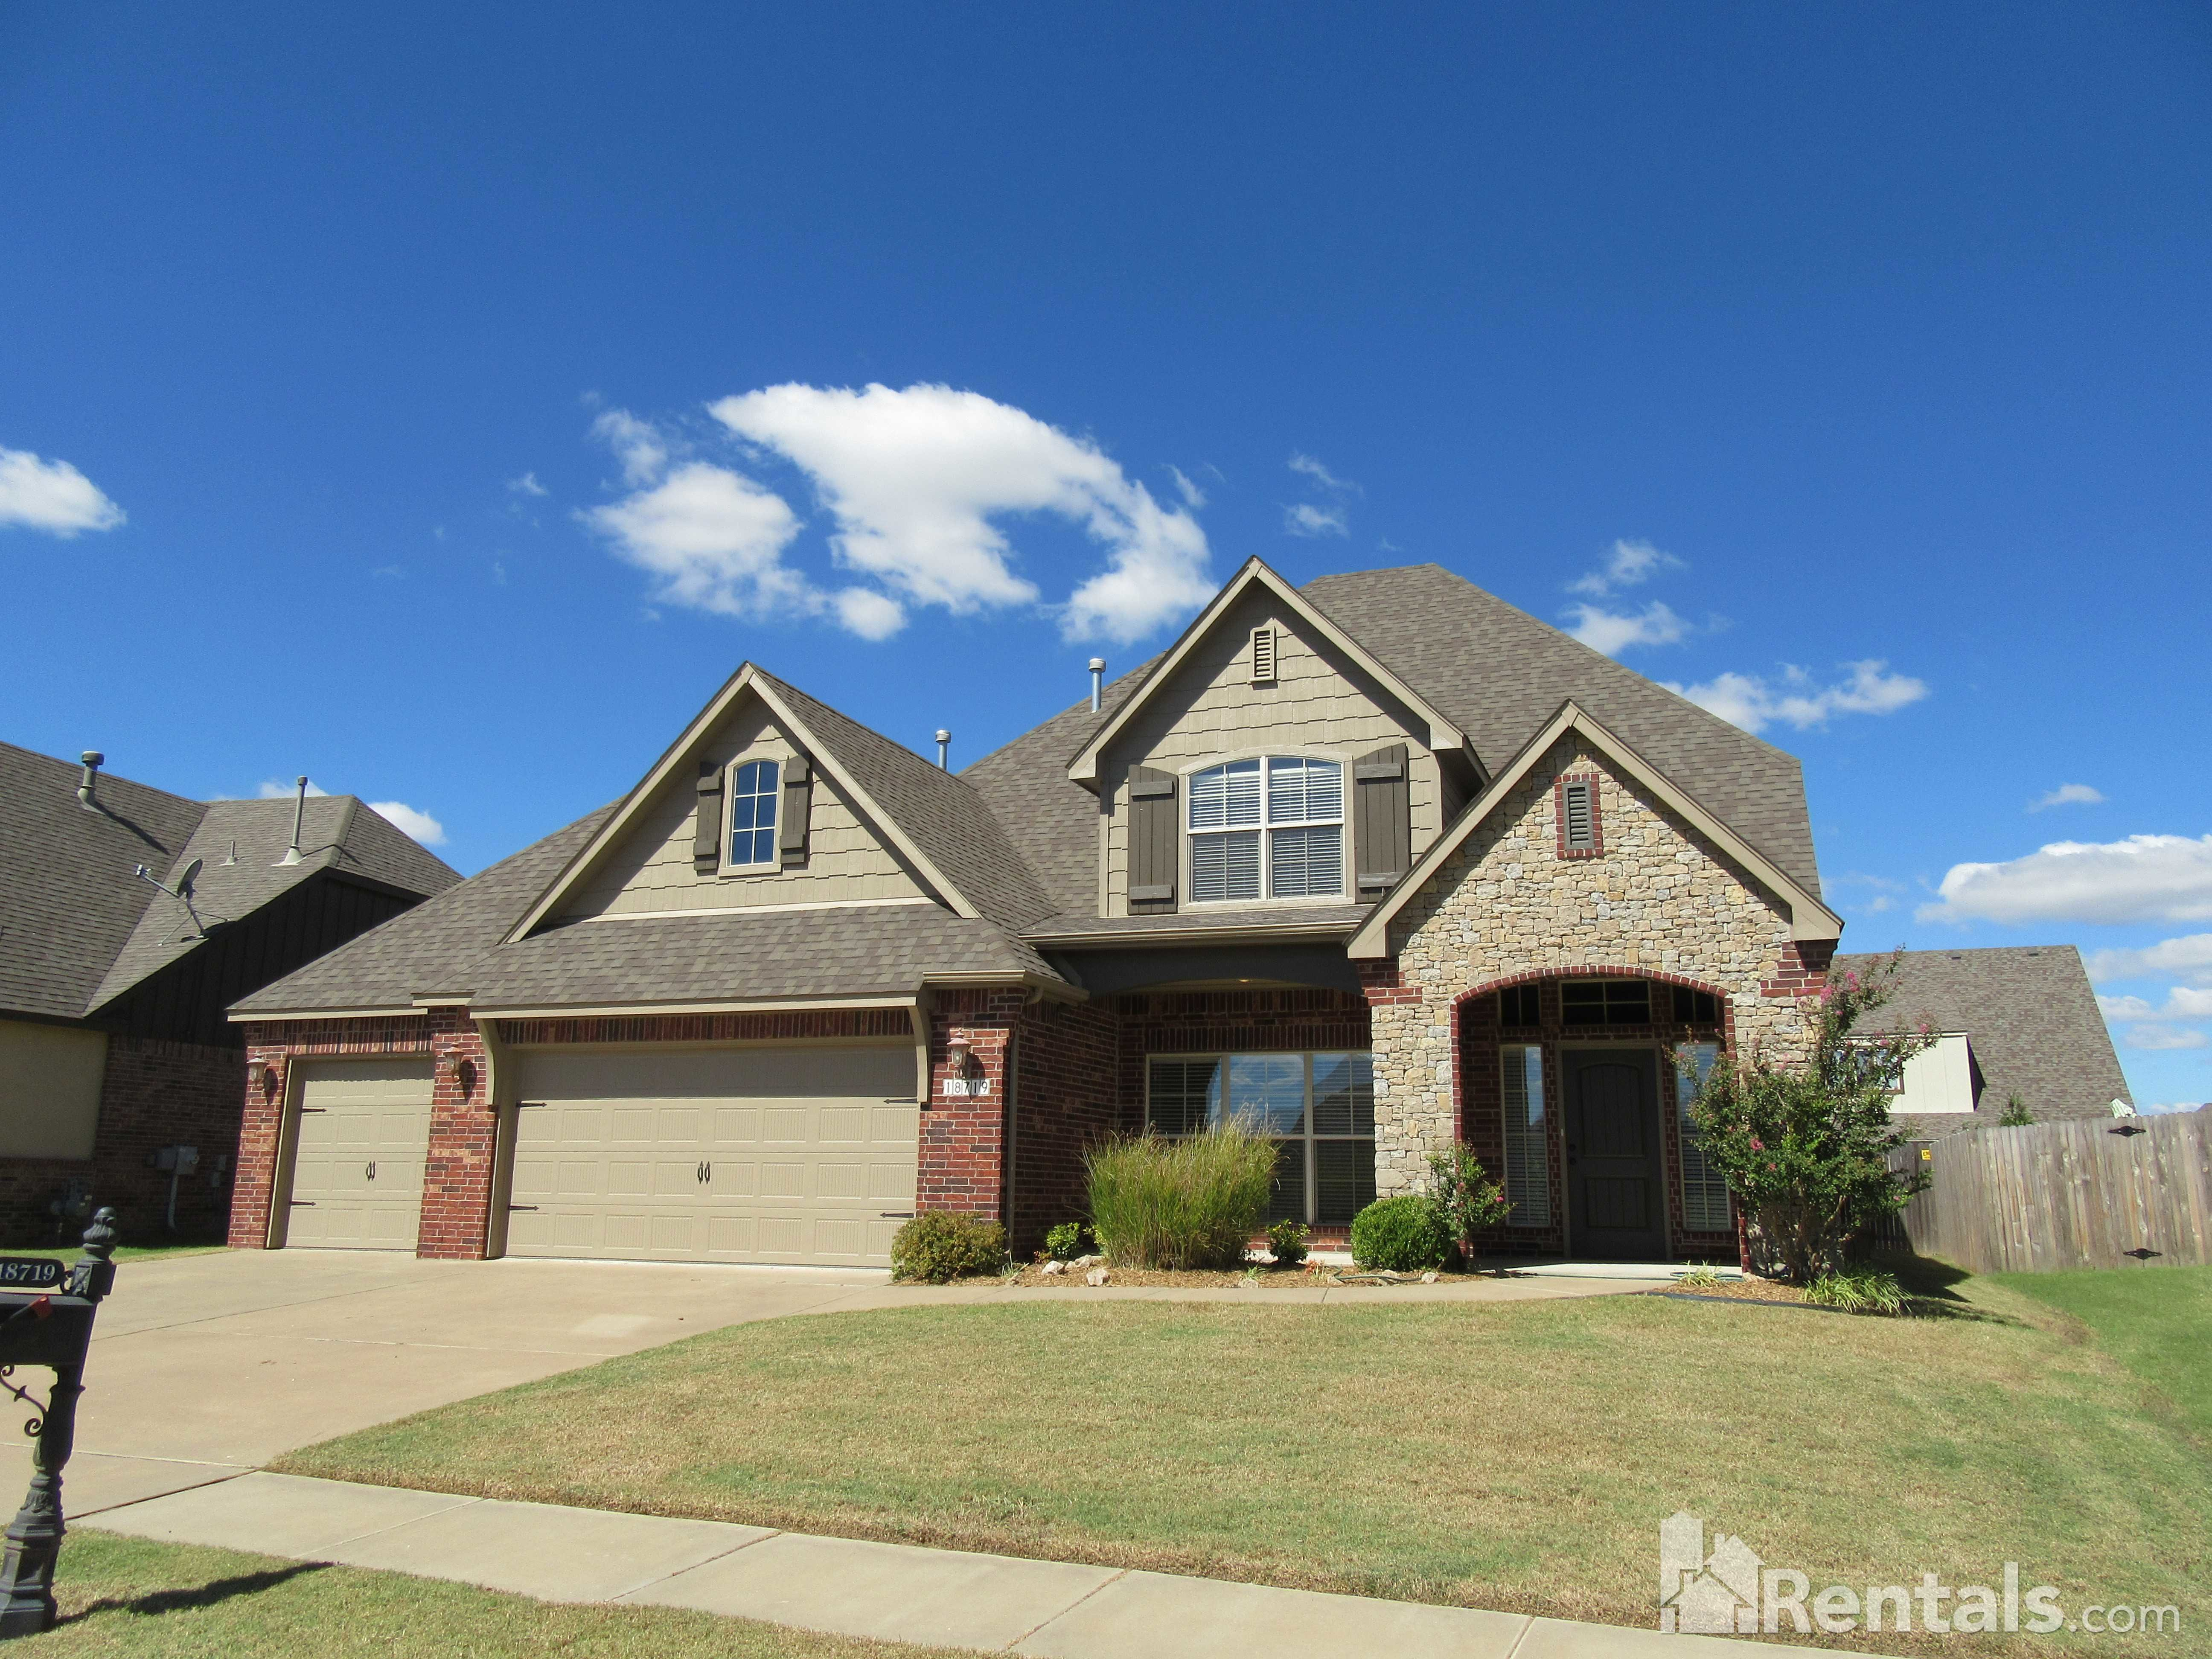 Best Tulsa Houses For Rent In Tulsa Oklahoma Rental Homes With Pictures